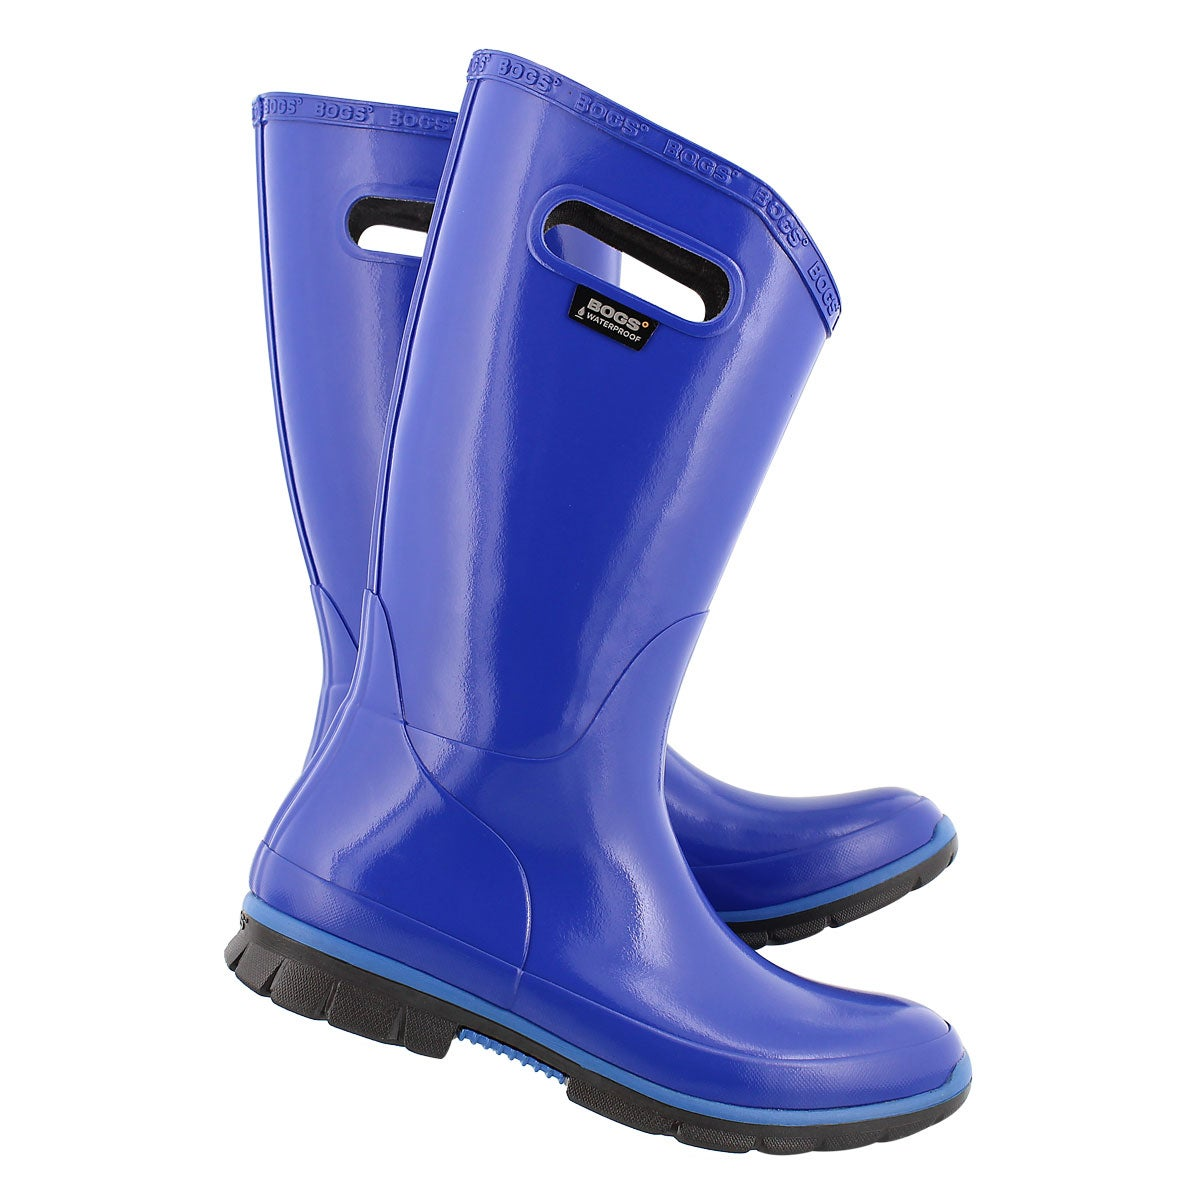 Lds Berkley french blue tall rain boot